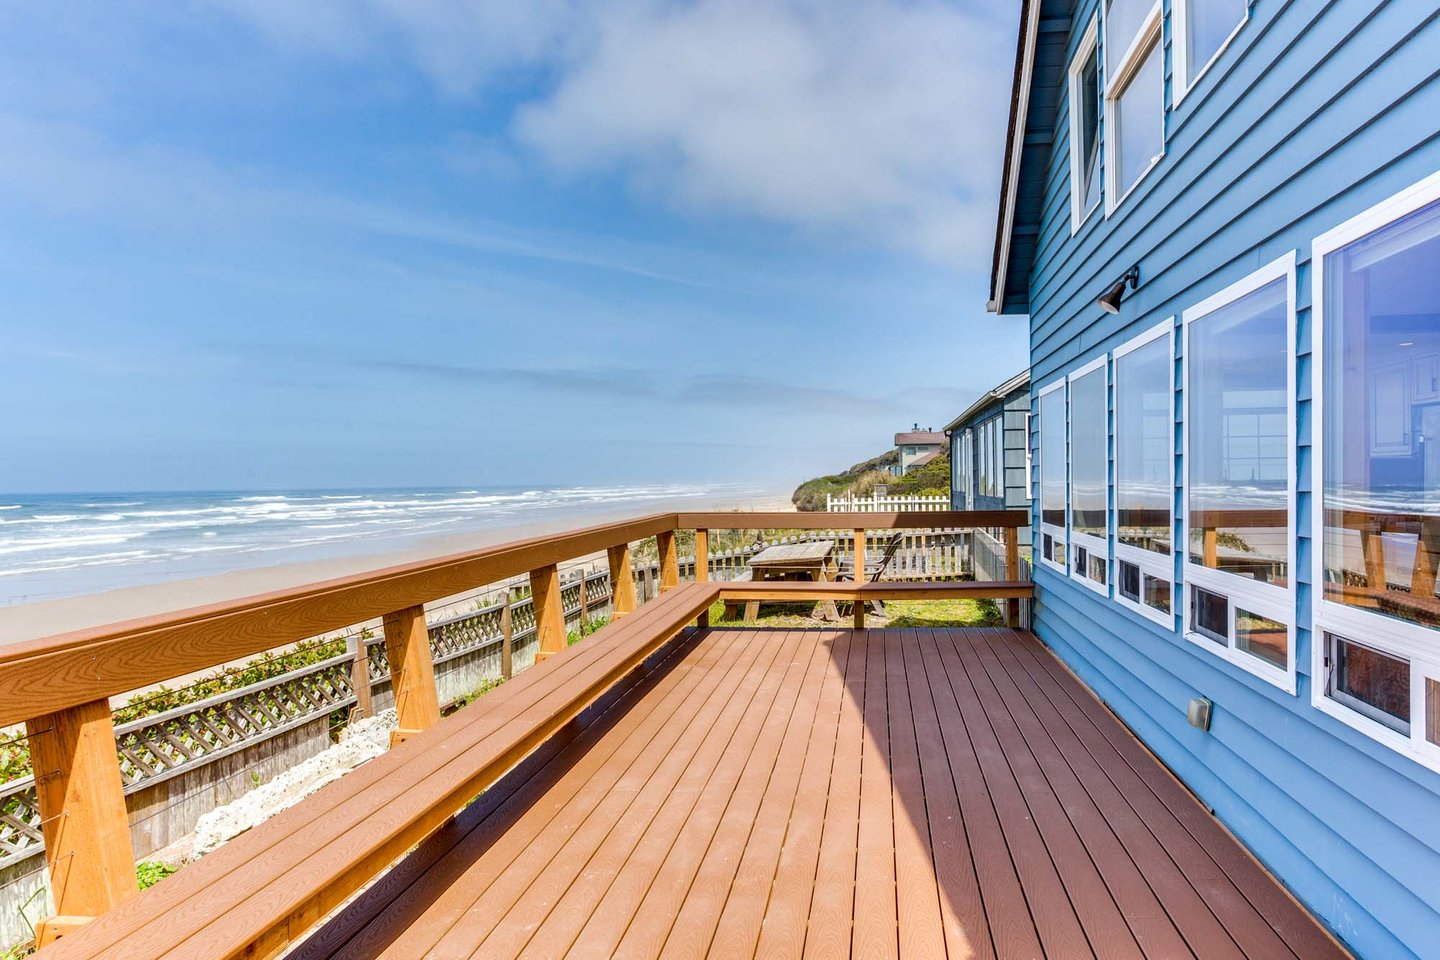 The ocean front deck and a wall of windows make this the perfect spot to vacation!